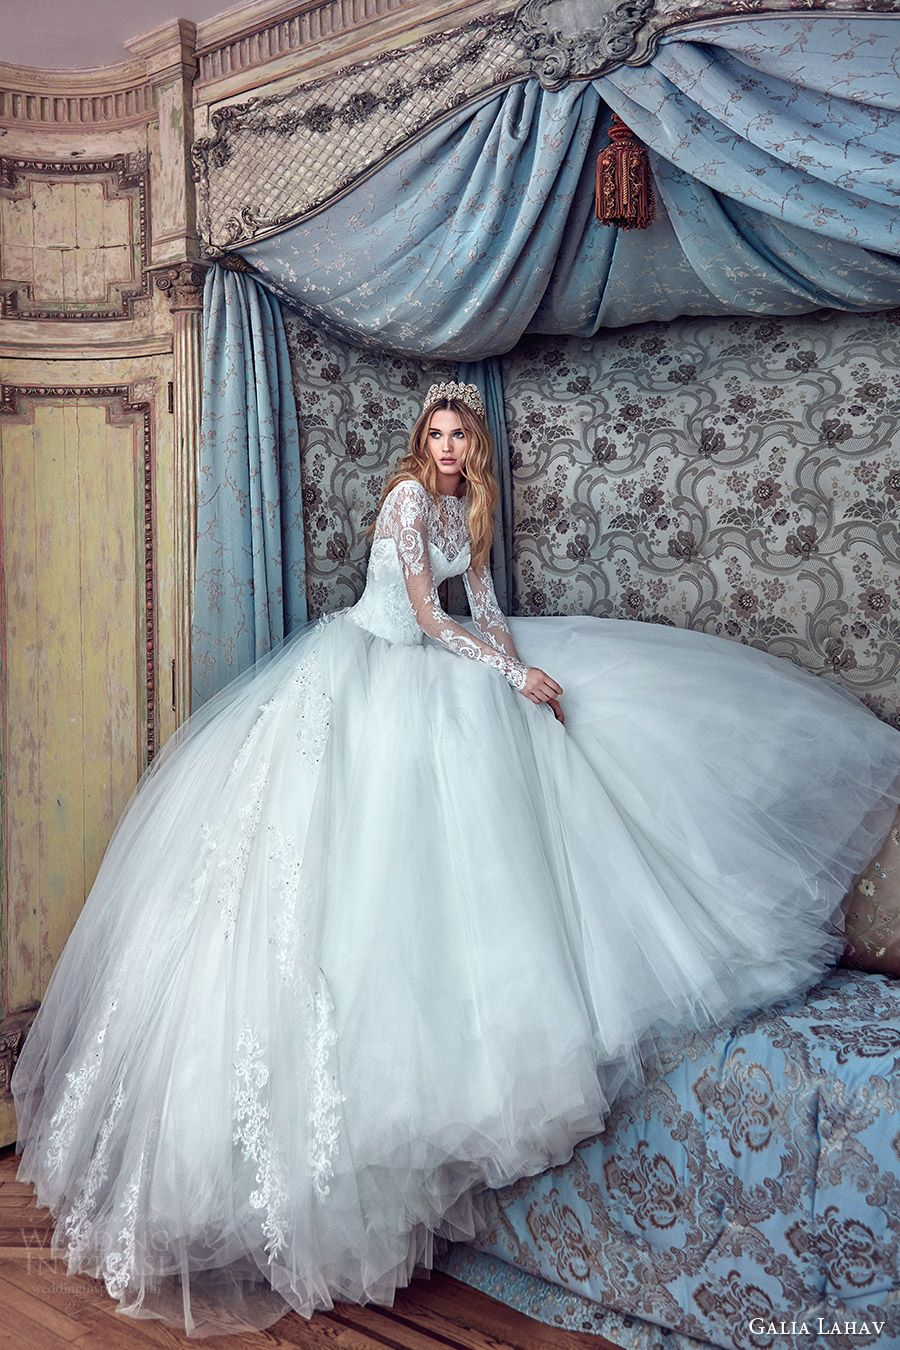 2017 Wedding Dress Trends — Part 2: Silhouettes, Embellishments and ...